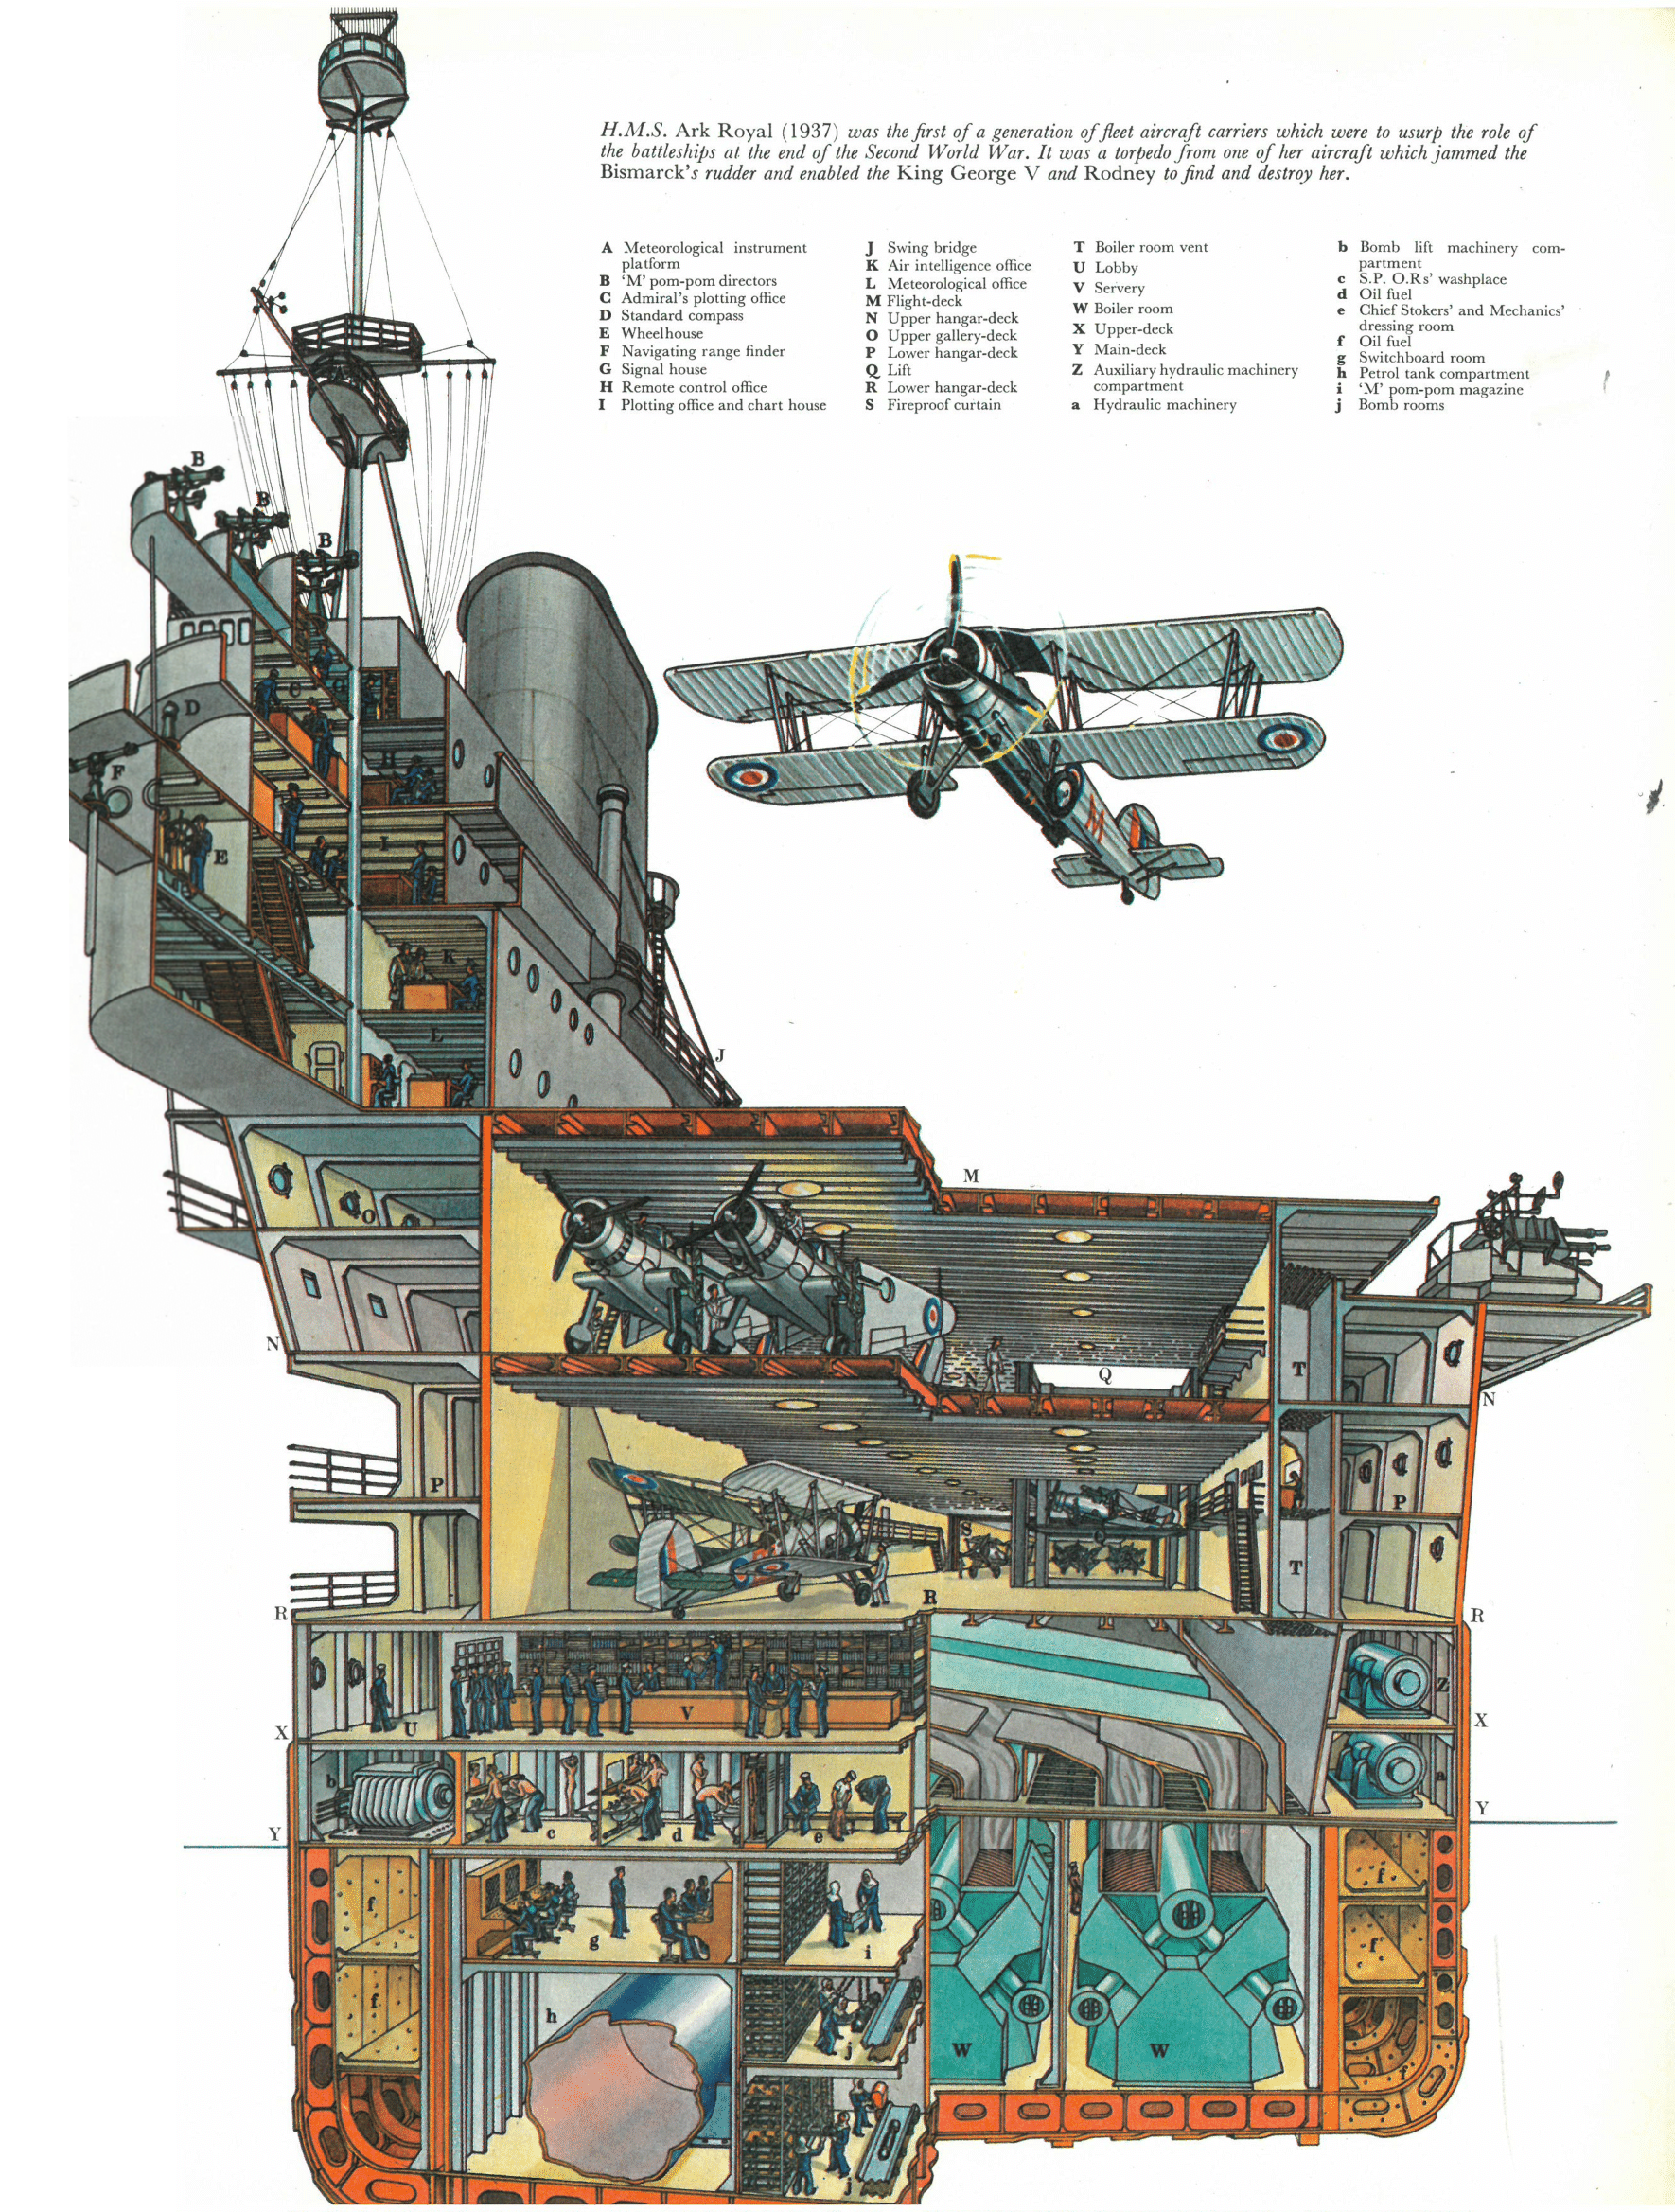 BRITISH ROYAL NAVY WAR SHIP CROSS SECTION CUTAWAY PAINTING REAL CANVAS ART PRINT